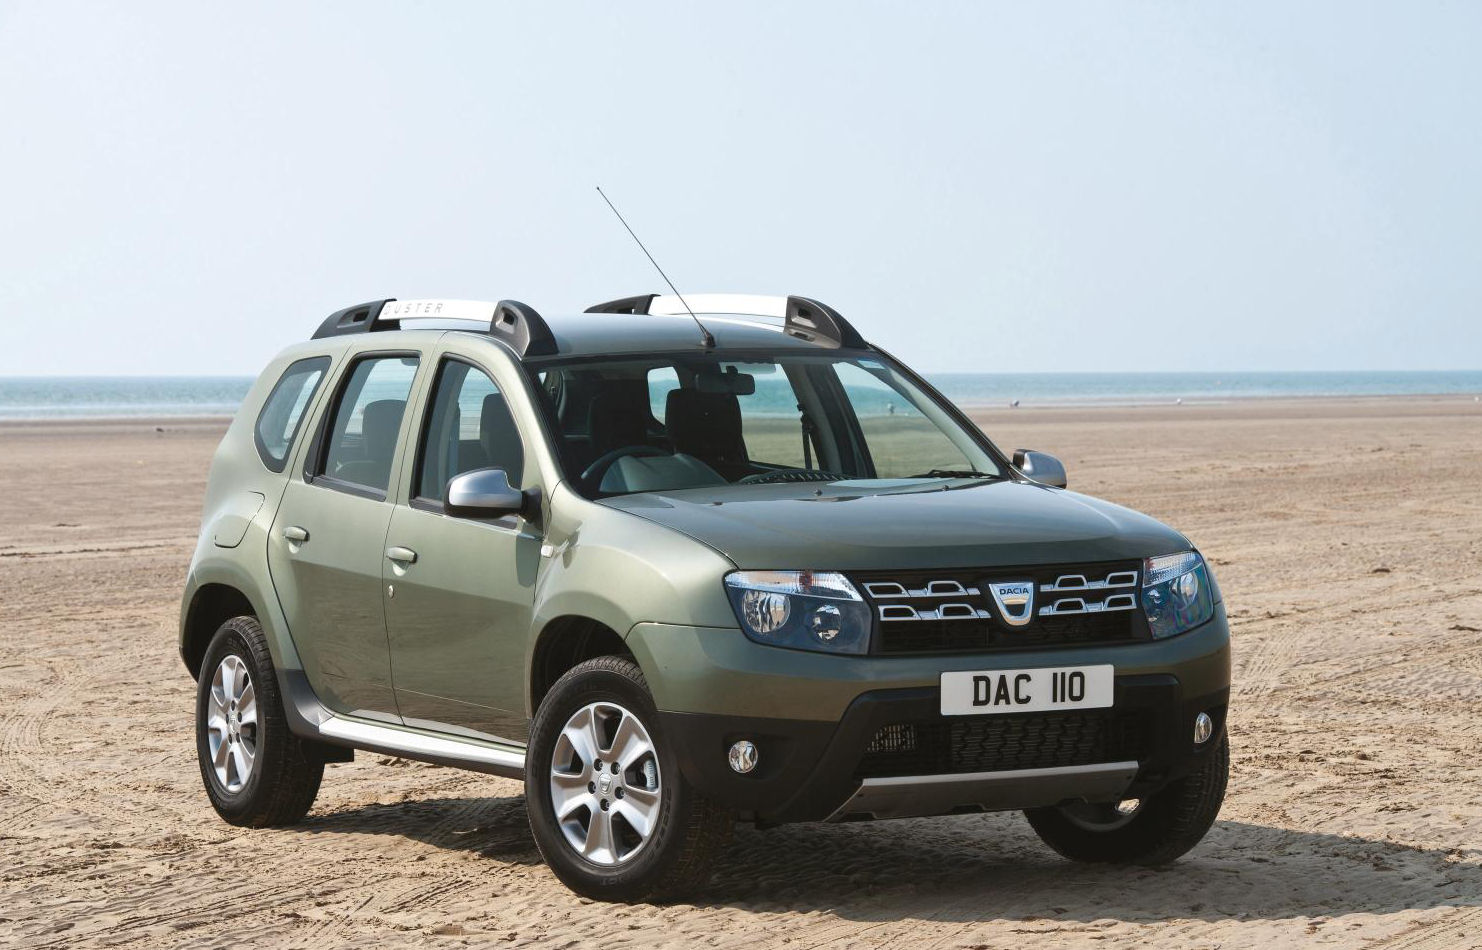 The new facelifted Dacia Duster